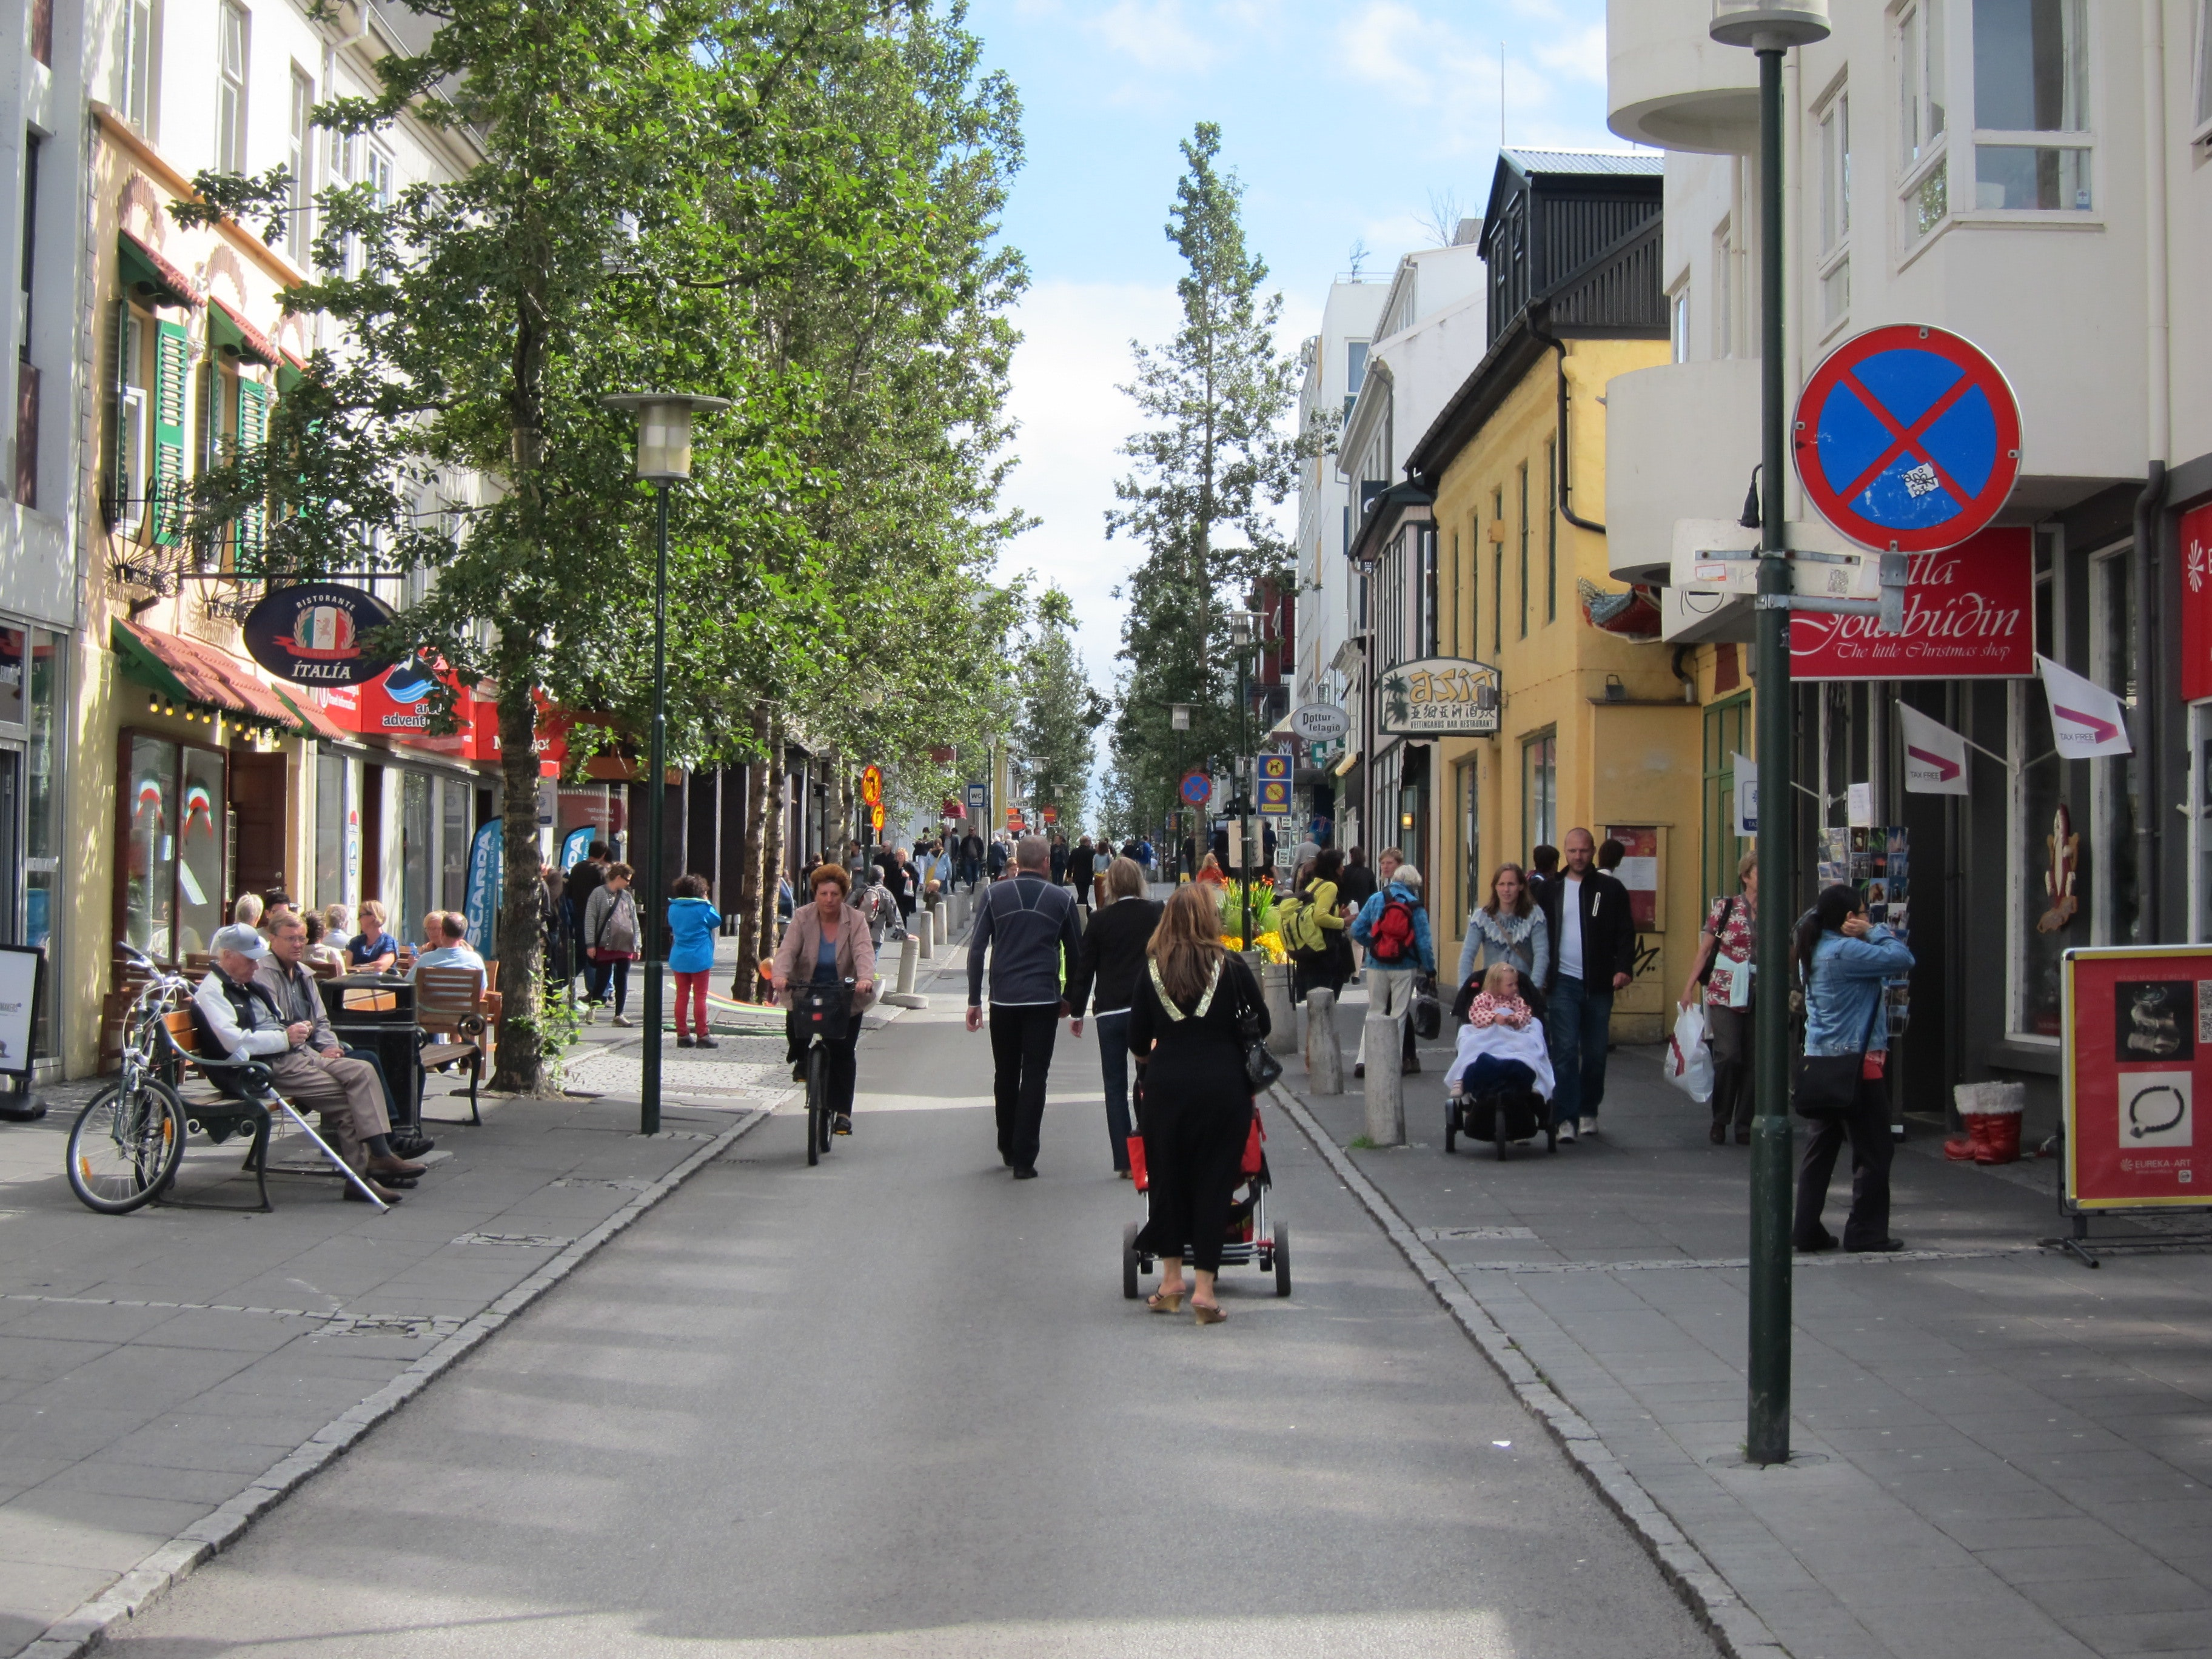 Laugavegur is the main shopping and nightlife street in Reykjavík